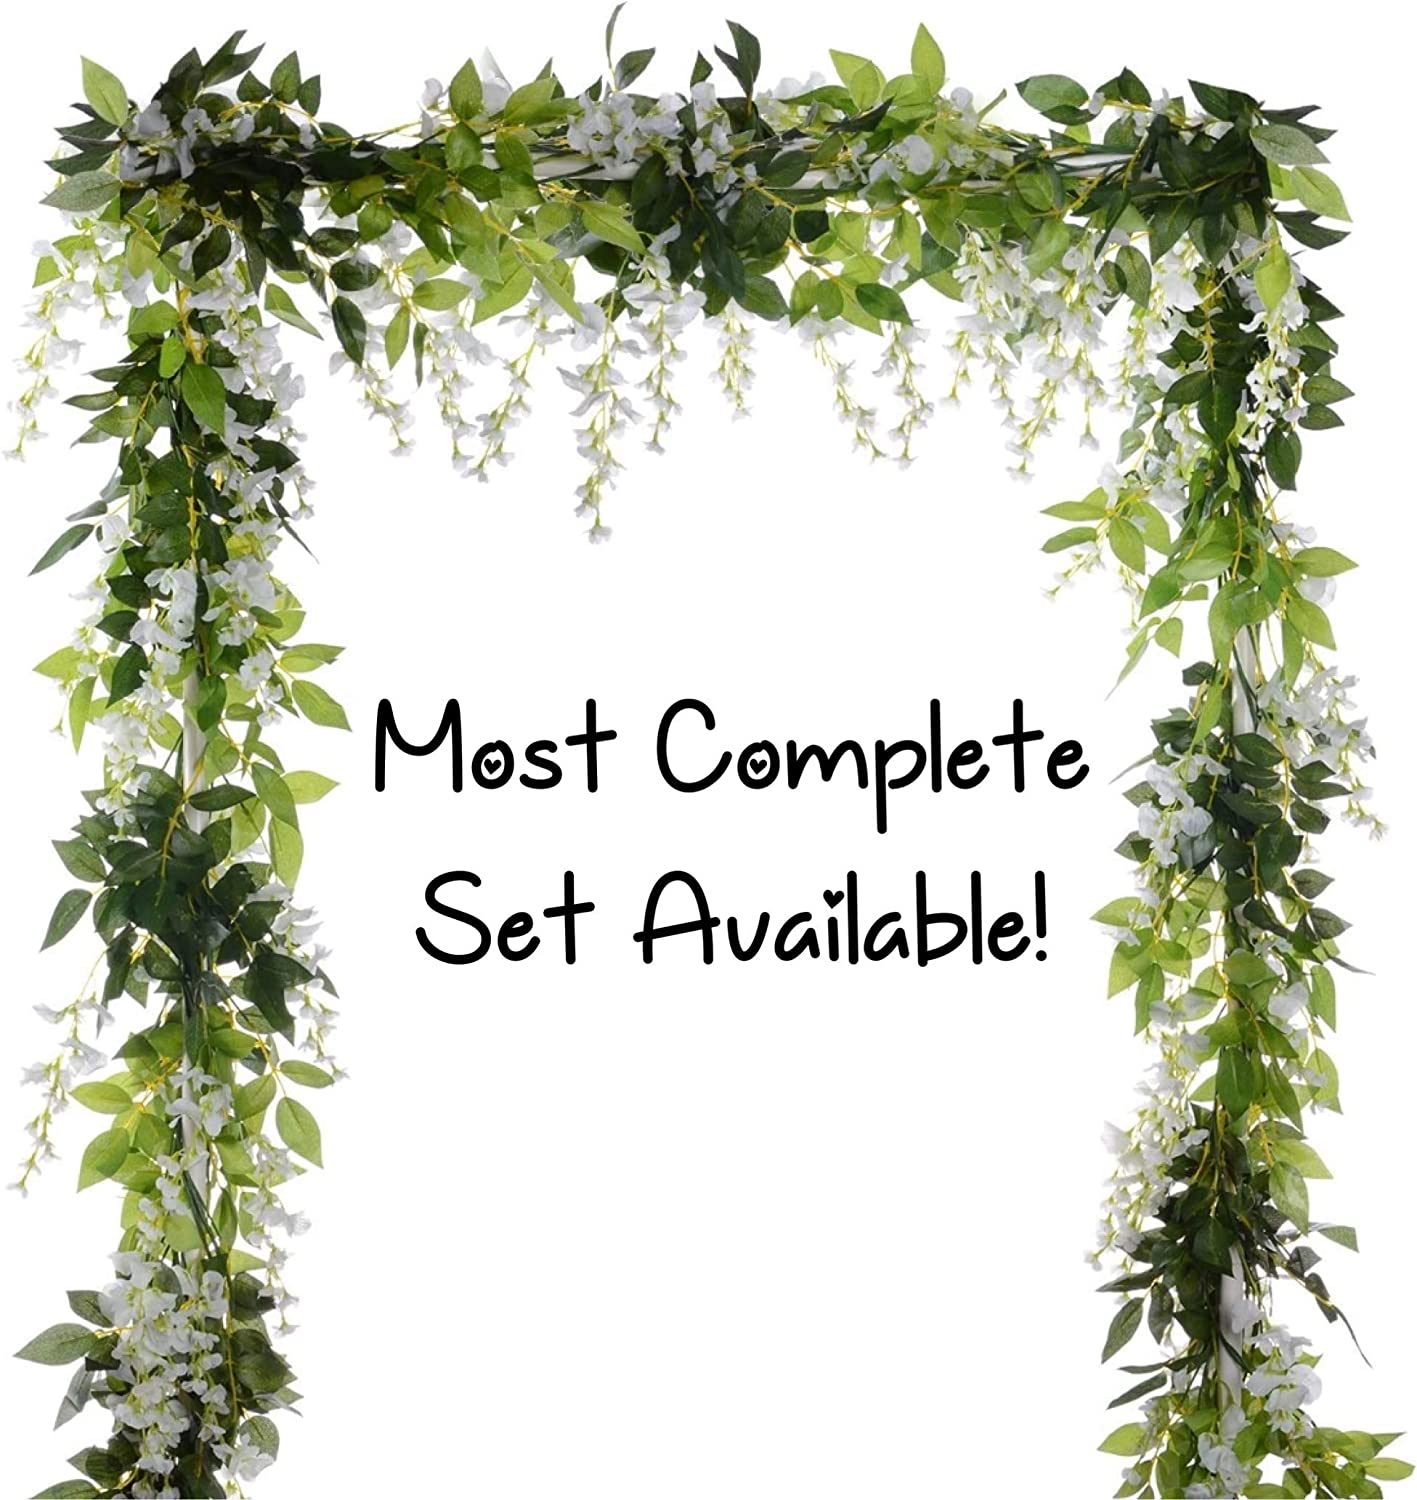 CB Gypsy 10 Pcs (60ft Total) Wisteria Artificial Flower Garland, Fake Wisteria Vine Leaves Silk Hanging Flowers for Home Garden Outdoor Ceremony Wedding Arch Floral Party Decor (White)